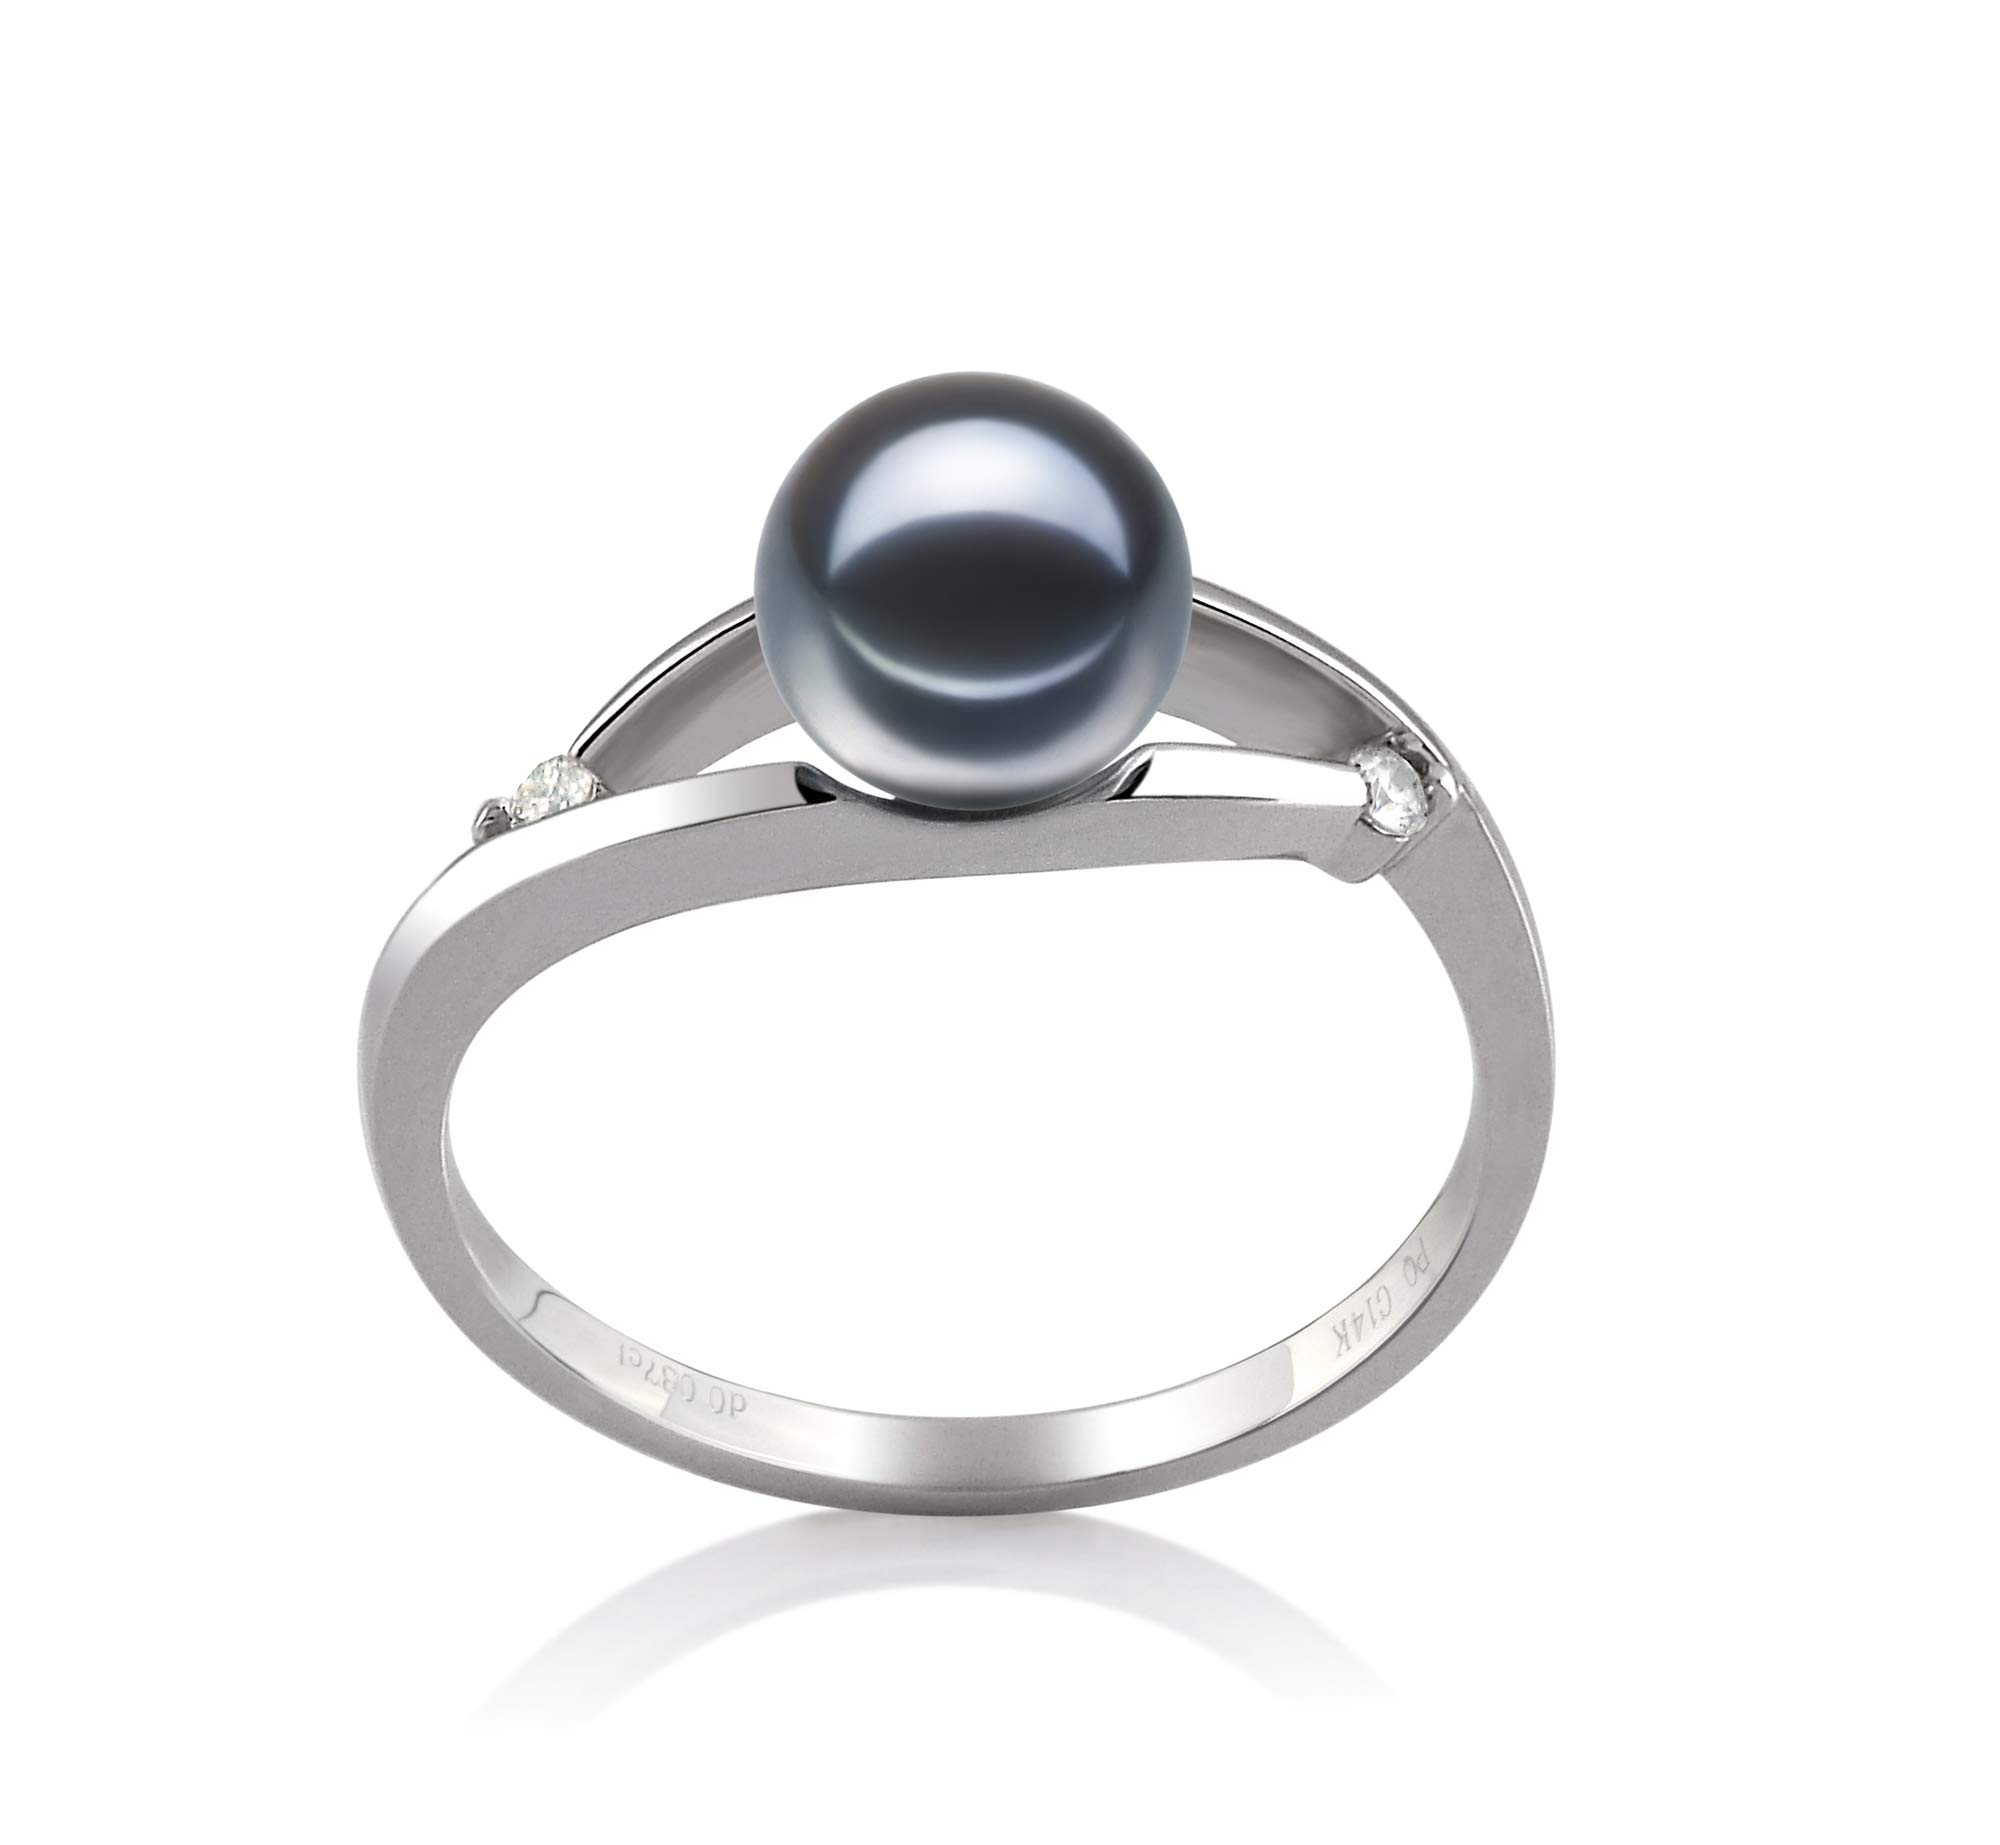 Tanya Black 6-7mm AAAA Quality Freshwater 14K White Gold Cultured Pearl Ring For Women - Size-7 by PearlsOnly